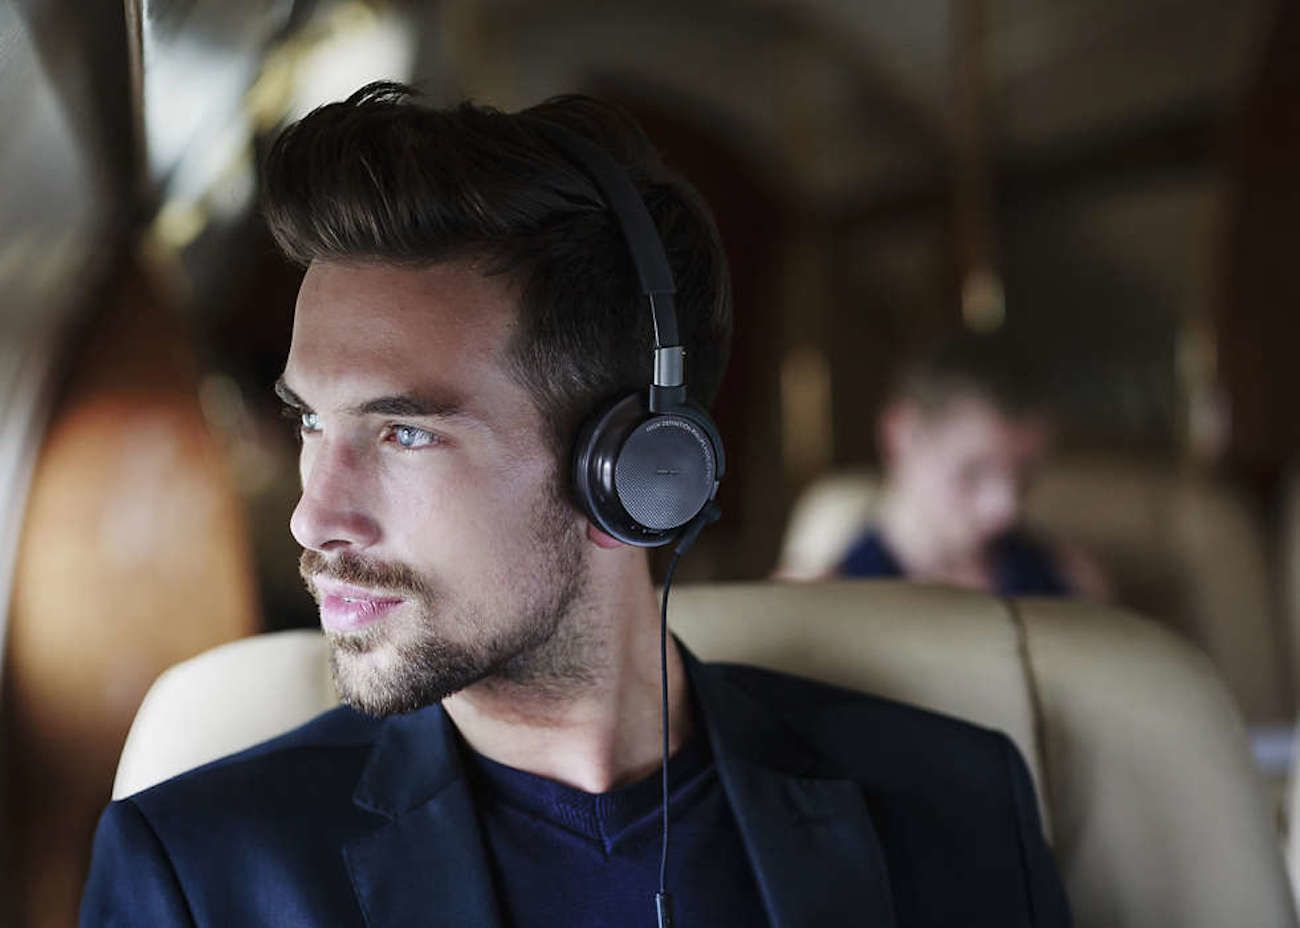 Philips+Fidelio+NC1%2F27+Noise+Cancelling+Headphones